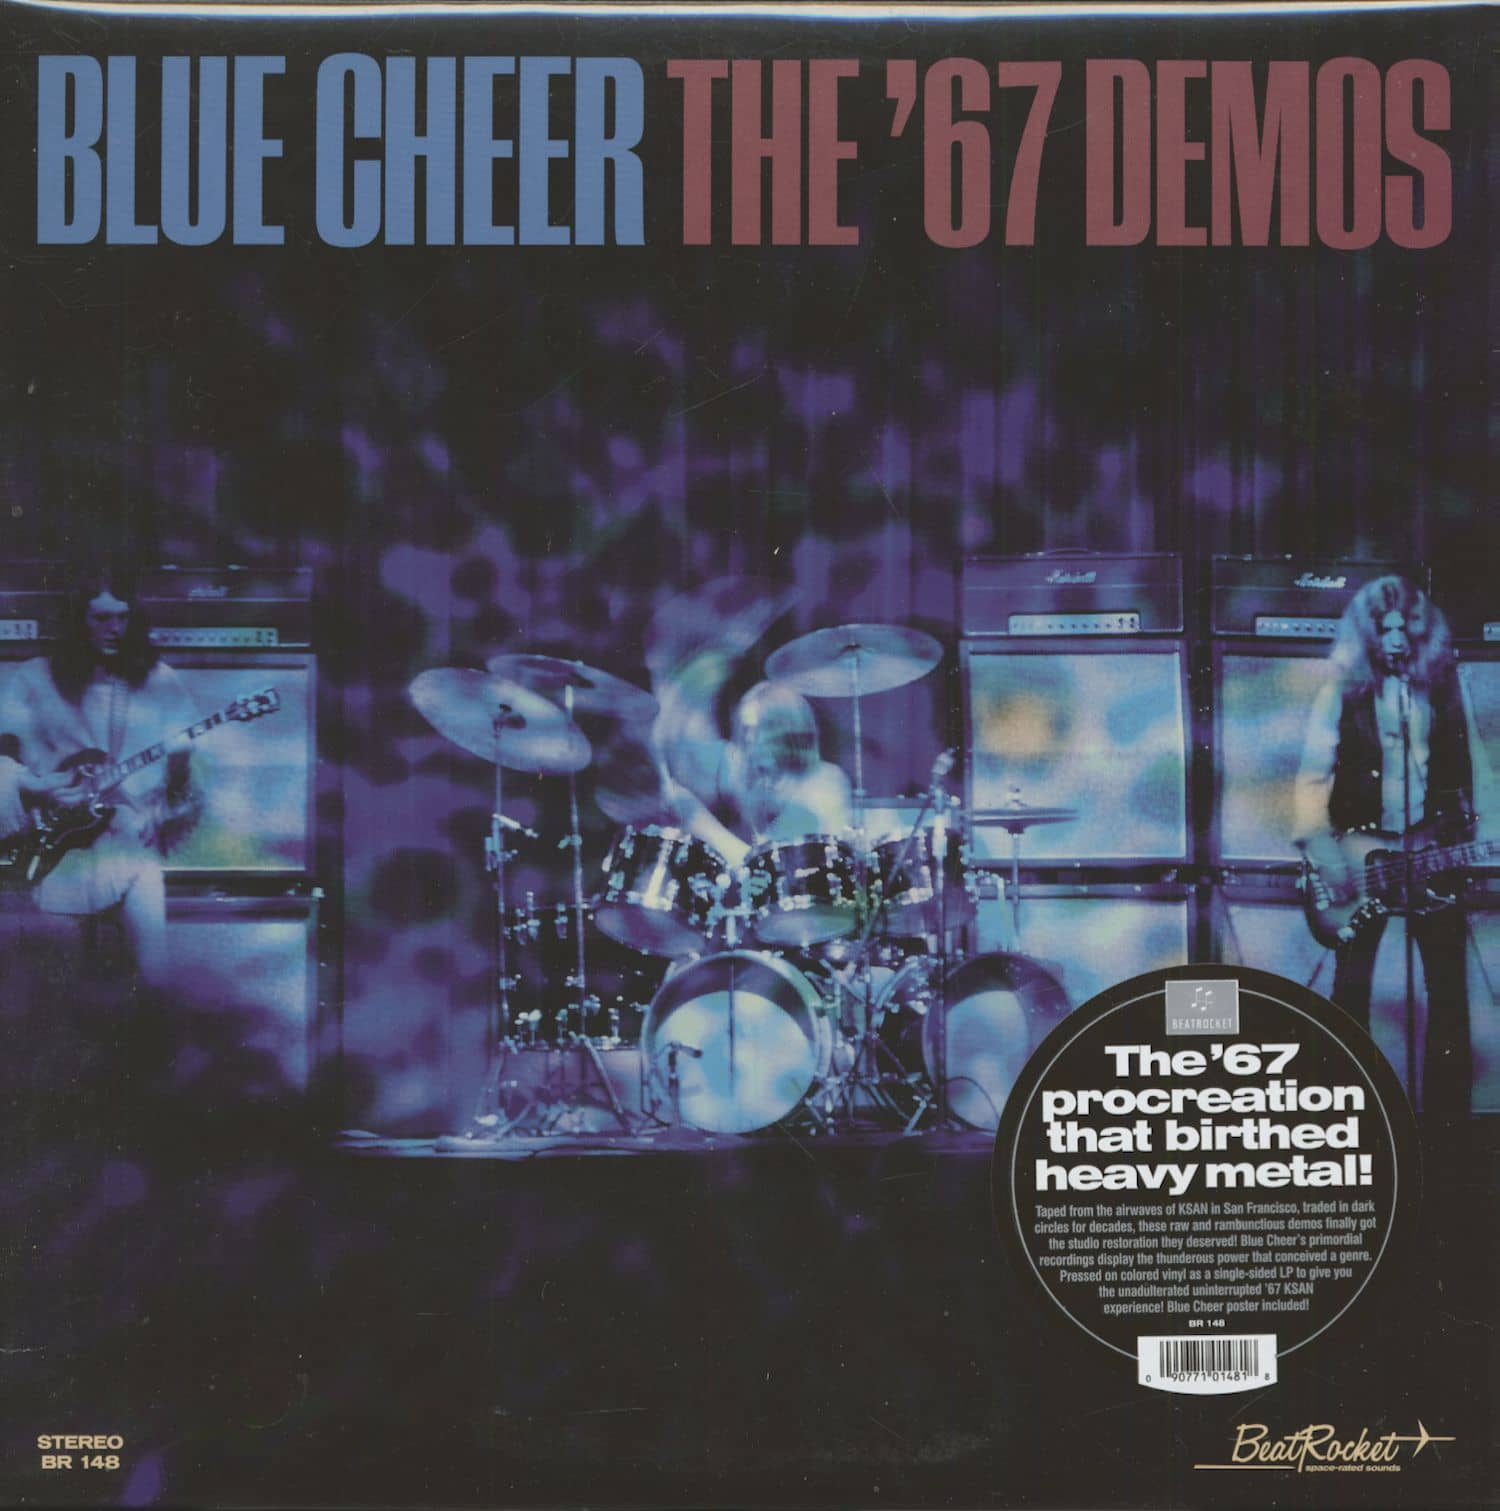 Preview the 67 demos